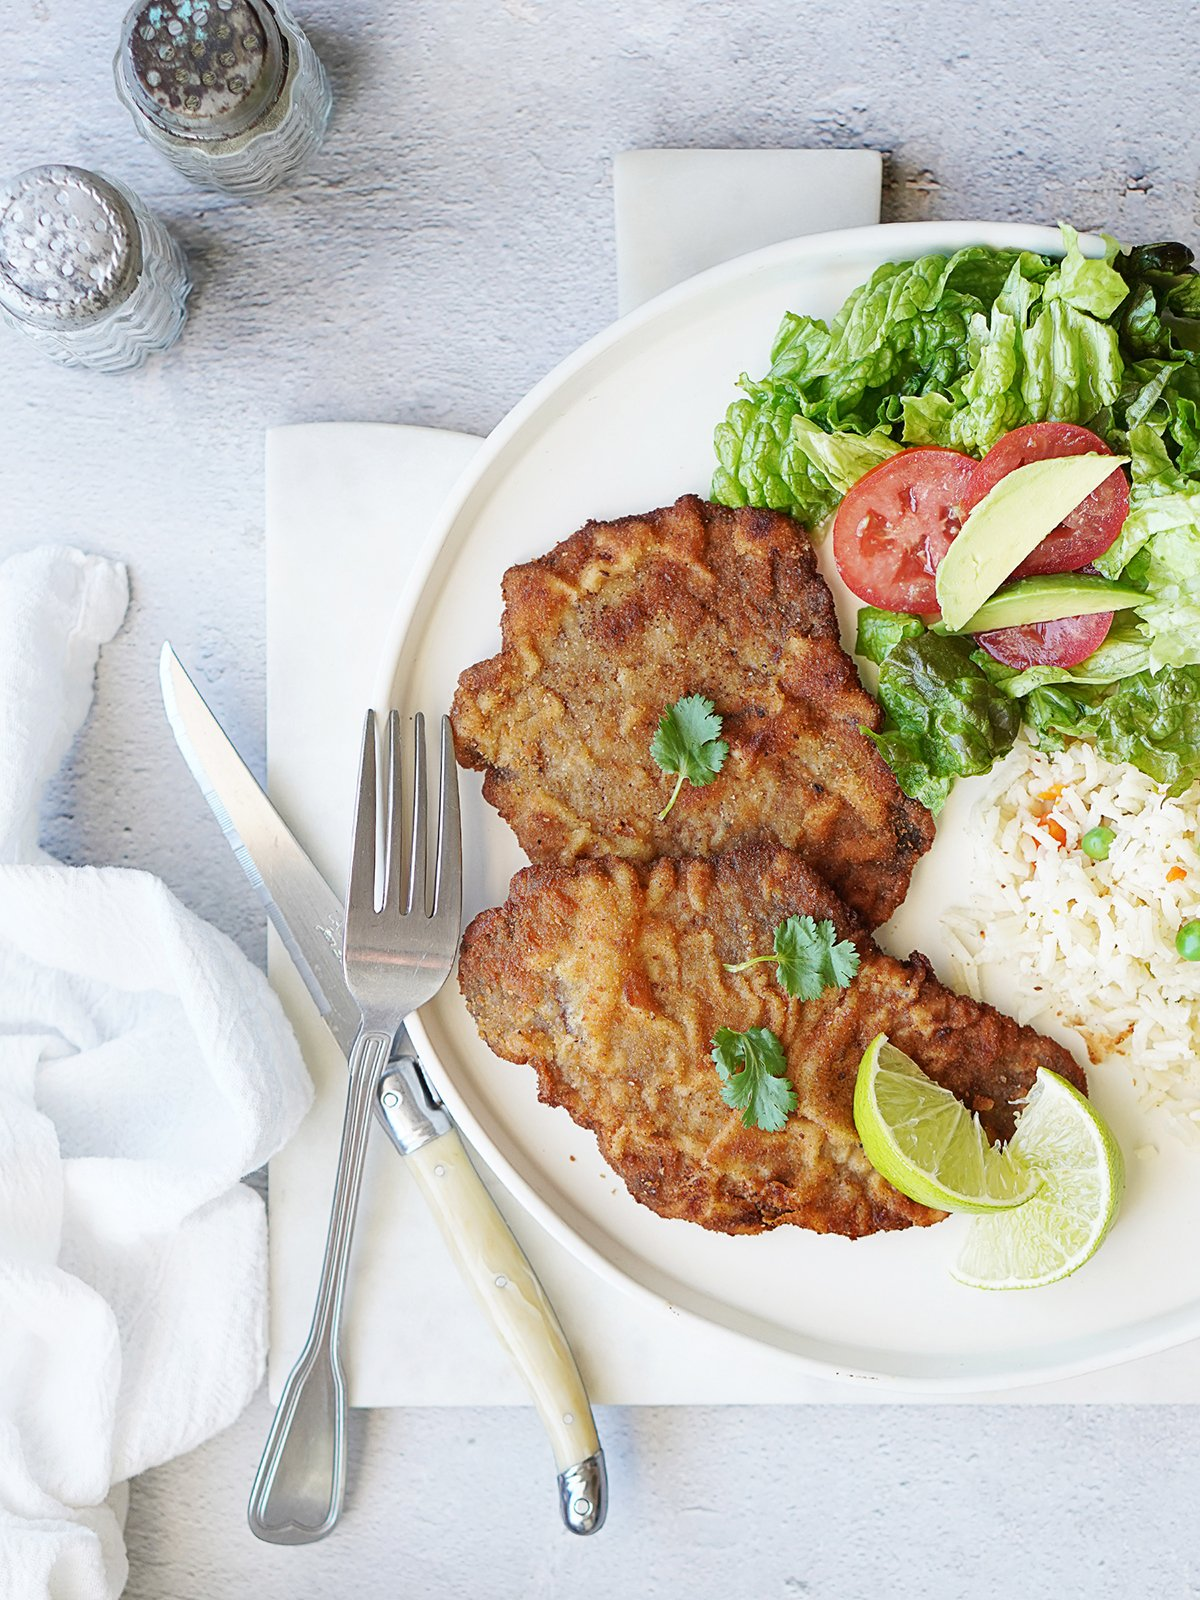 Two milanesa steaks on a plate with rice and salad